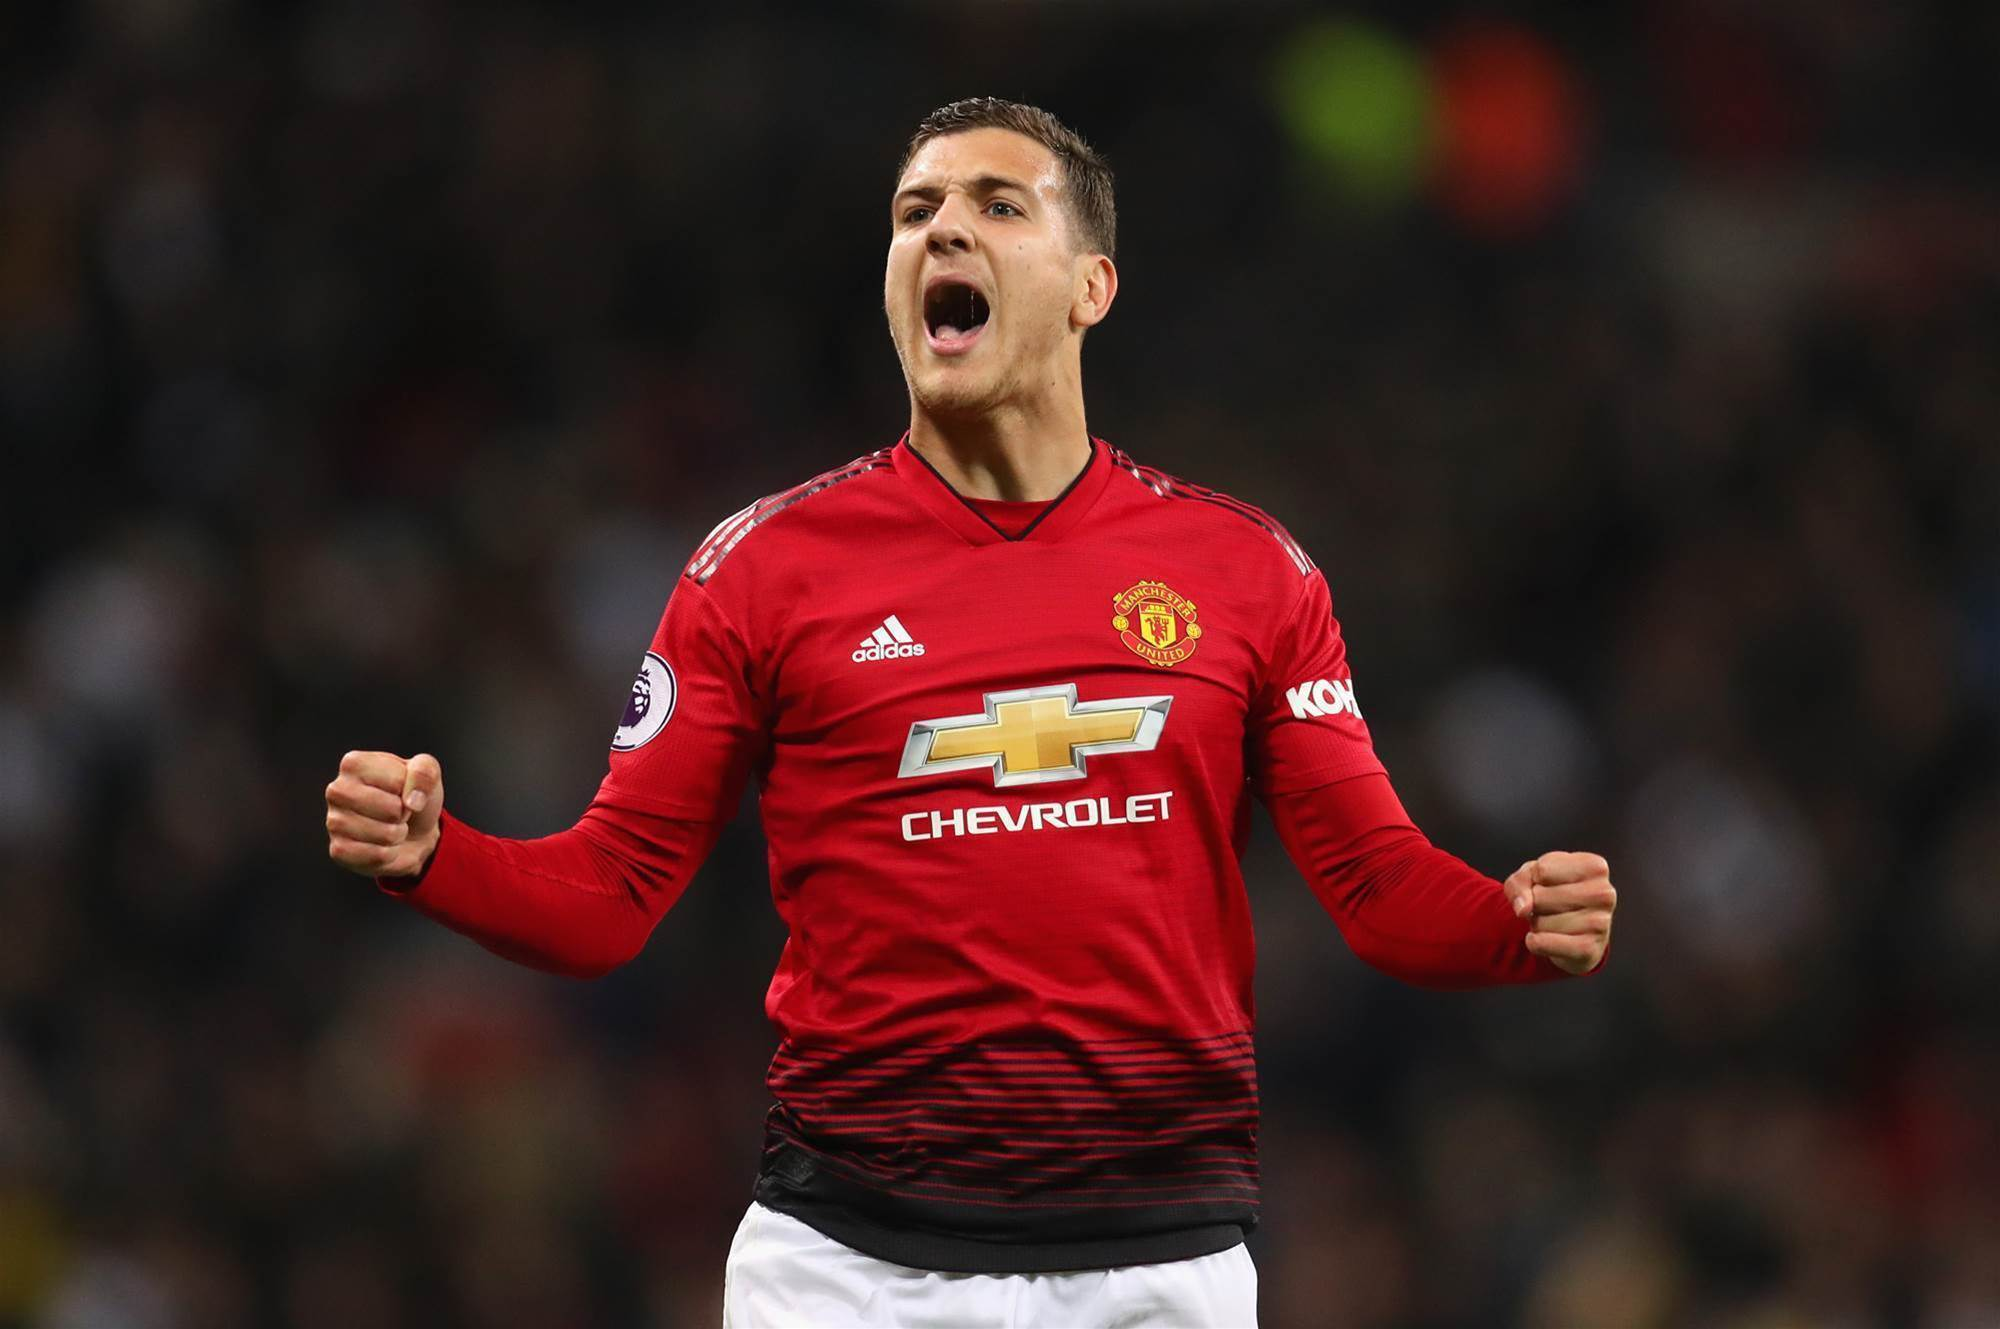 Man Utd's Dalot uses first salary to buy former team new bus